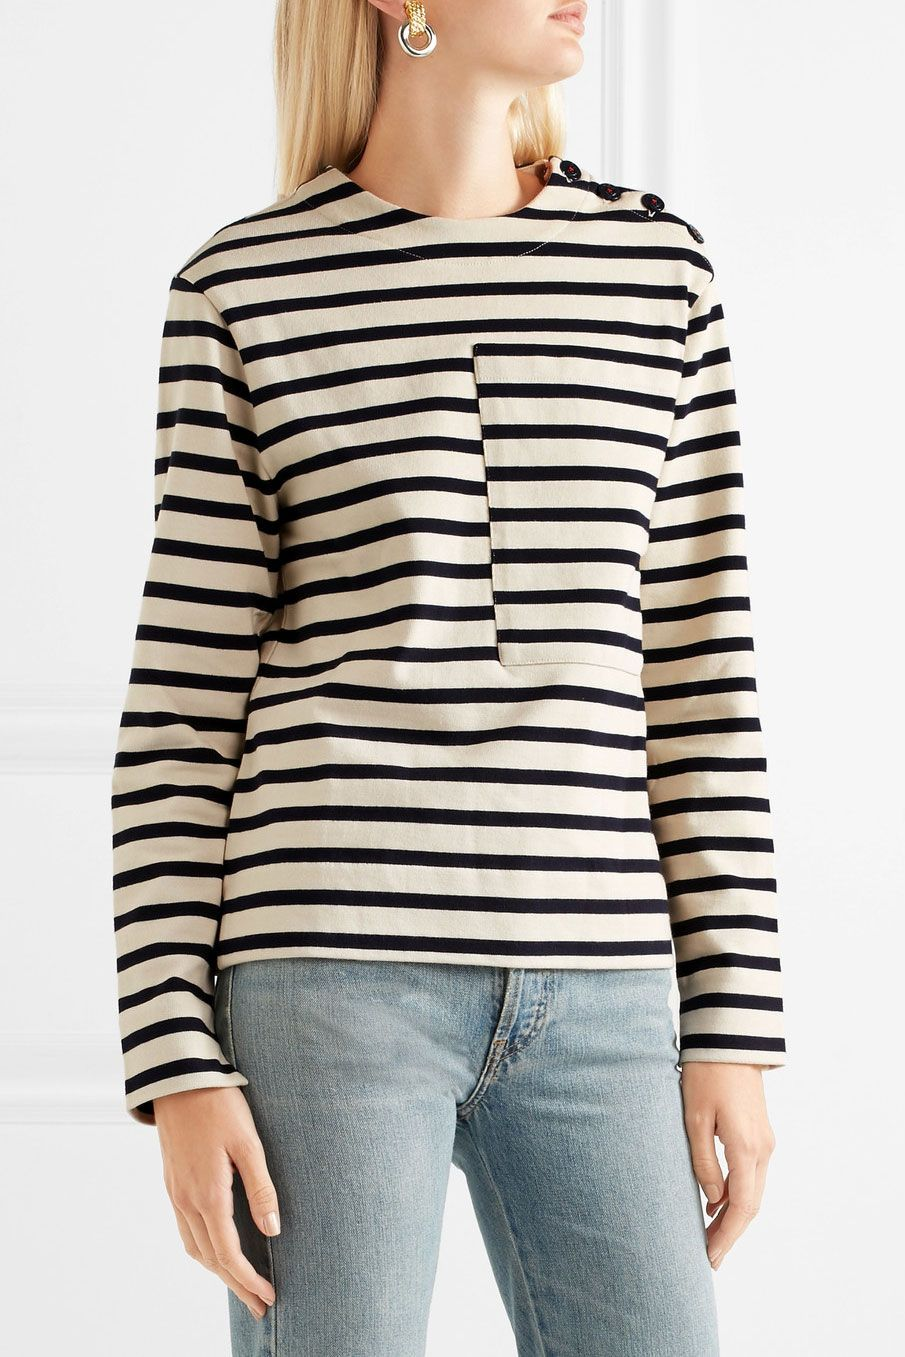 Joseph Breton Striped Cotton-Jersey Sweatshirt